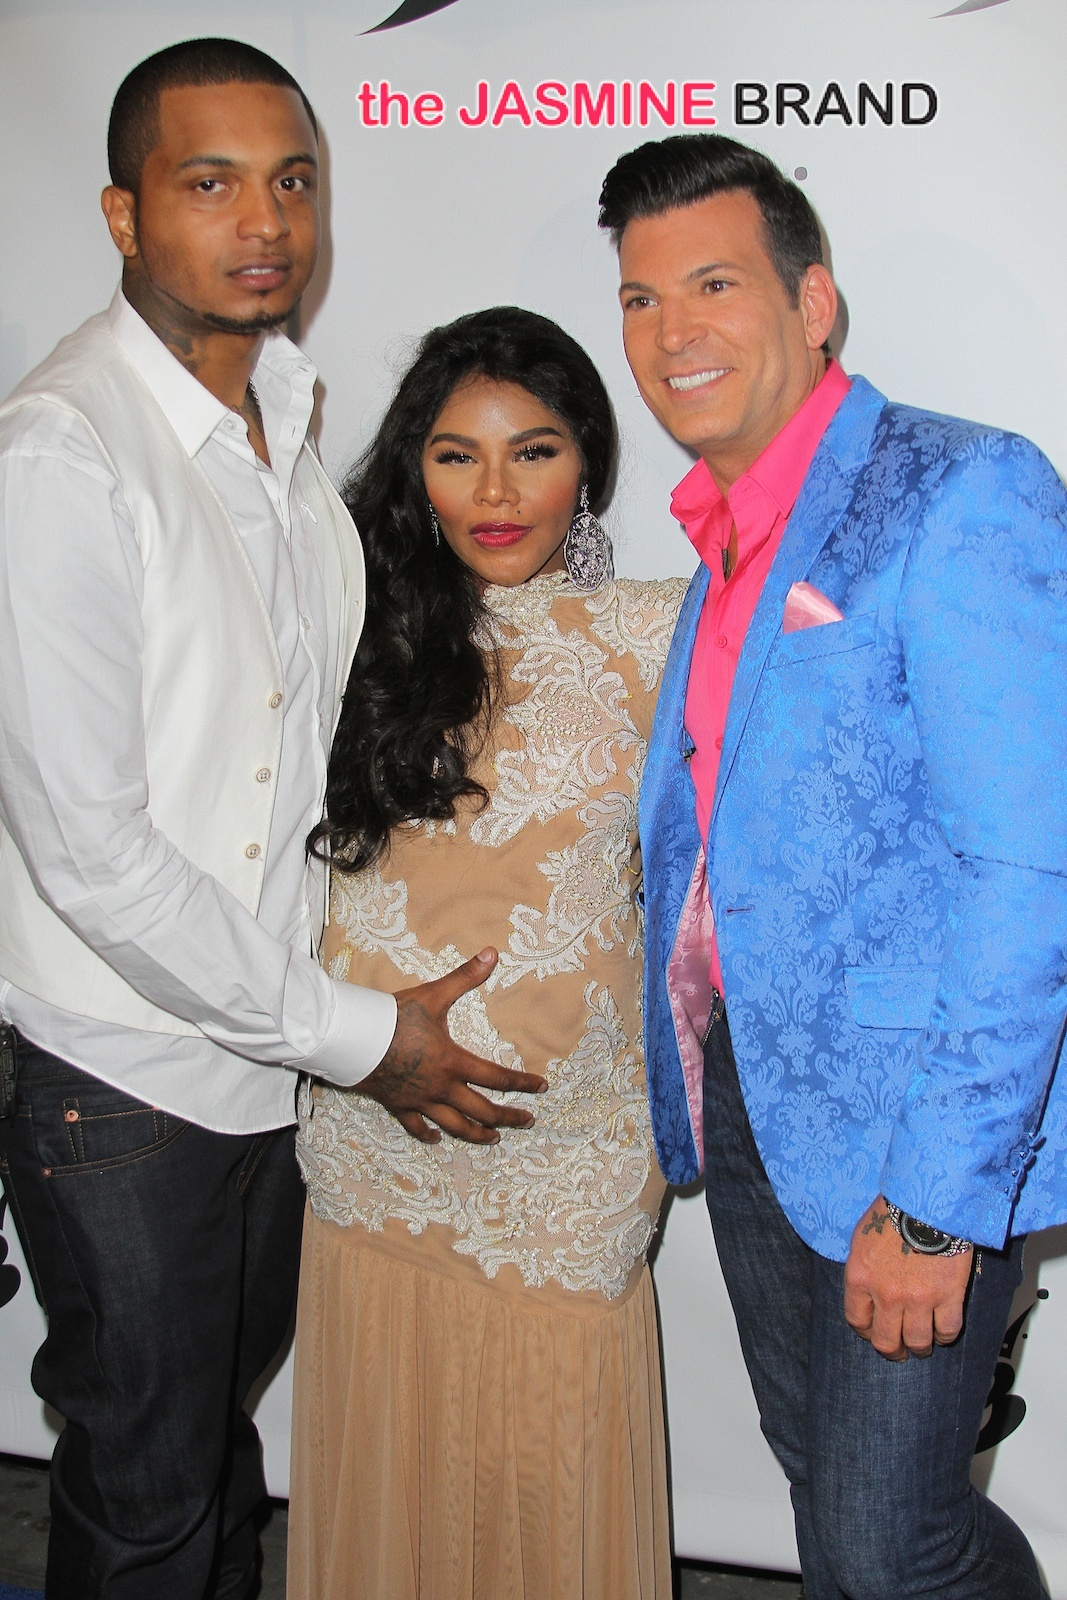 Lil Kim and Mr Papers arrive to their baby shower at Broad St Ballroom in NYC